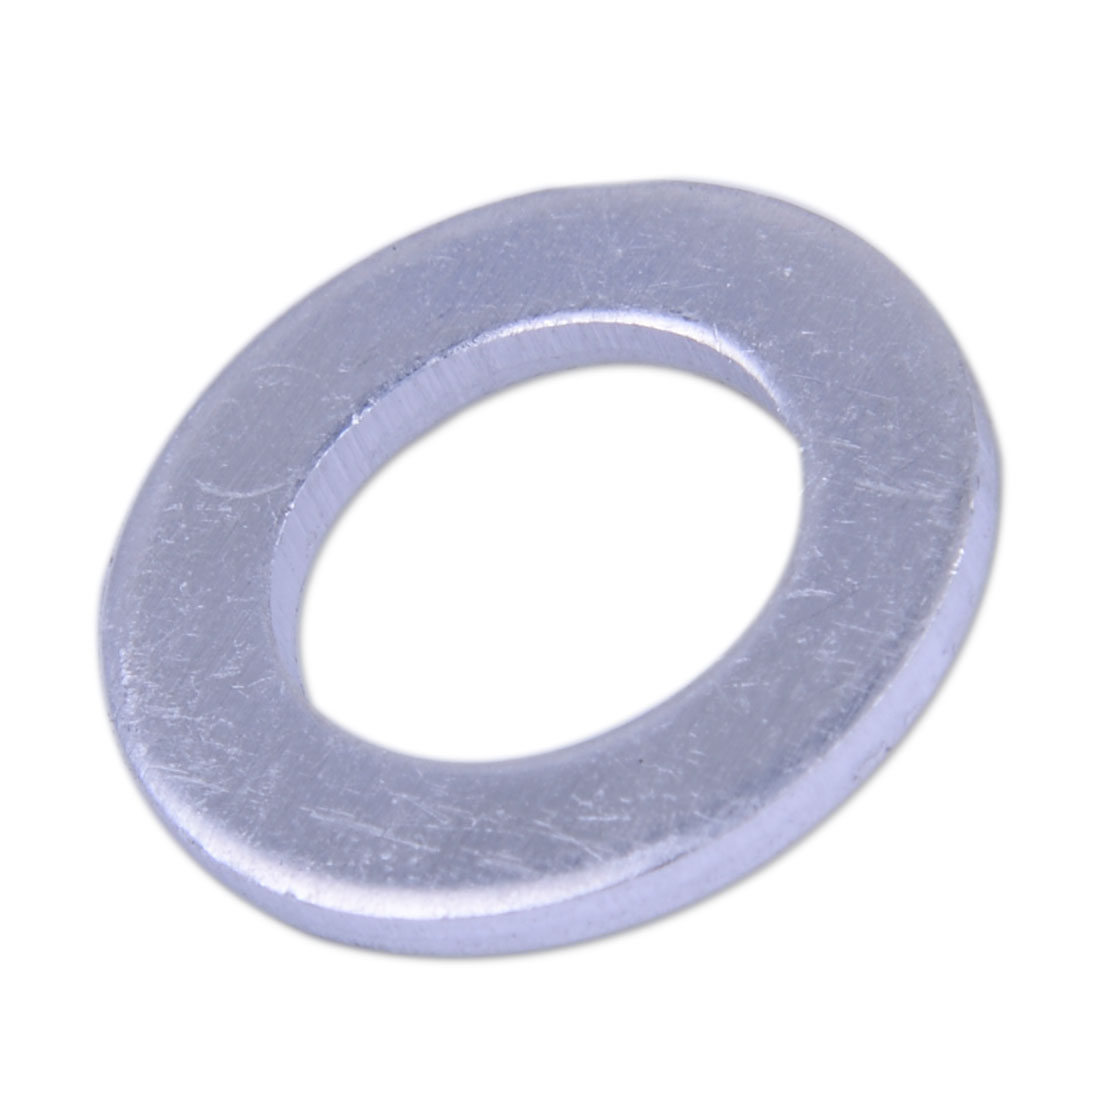 10x Engine Oil Drain Plug 14mm Crush Washer Gasket For